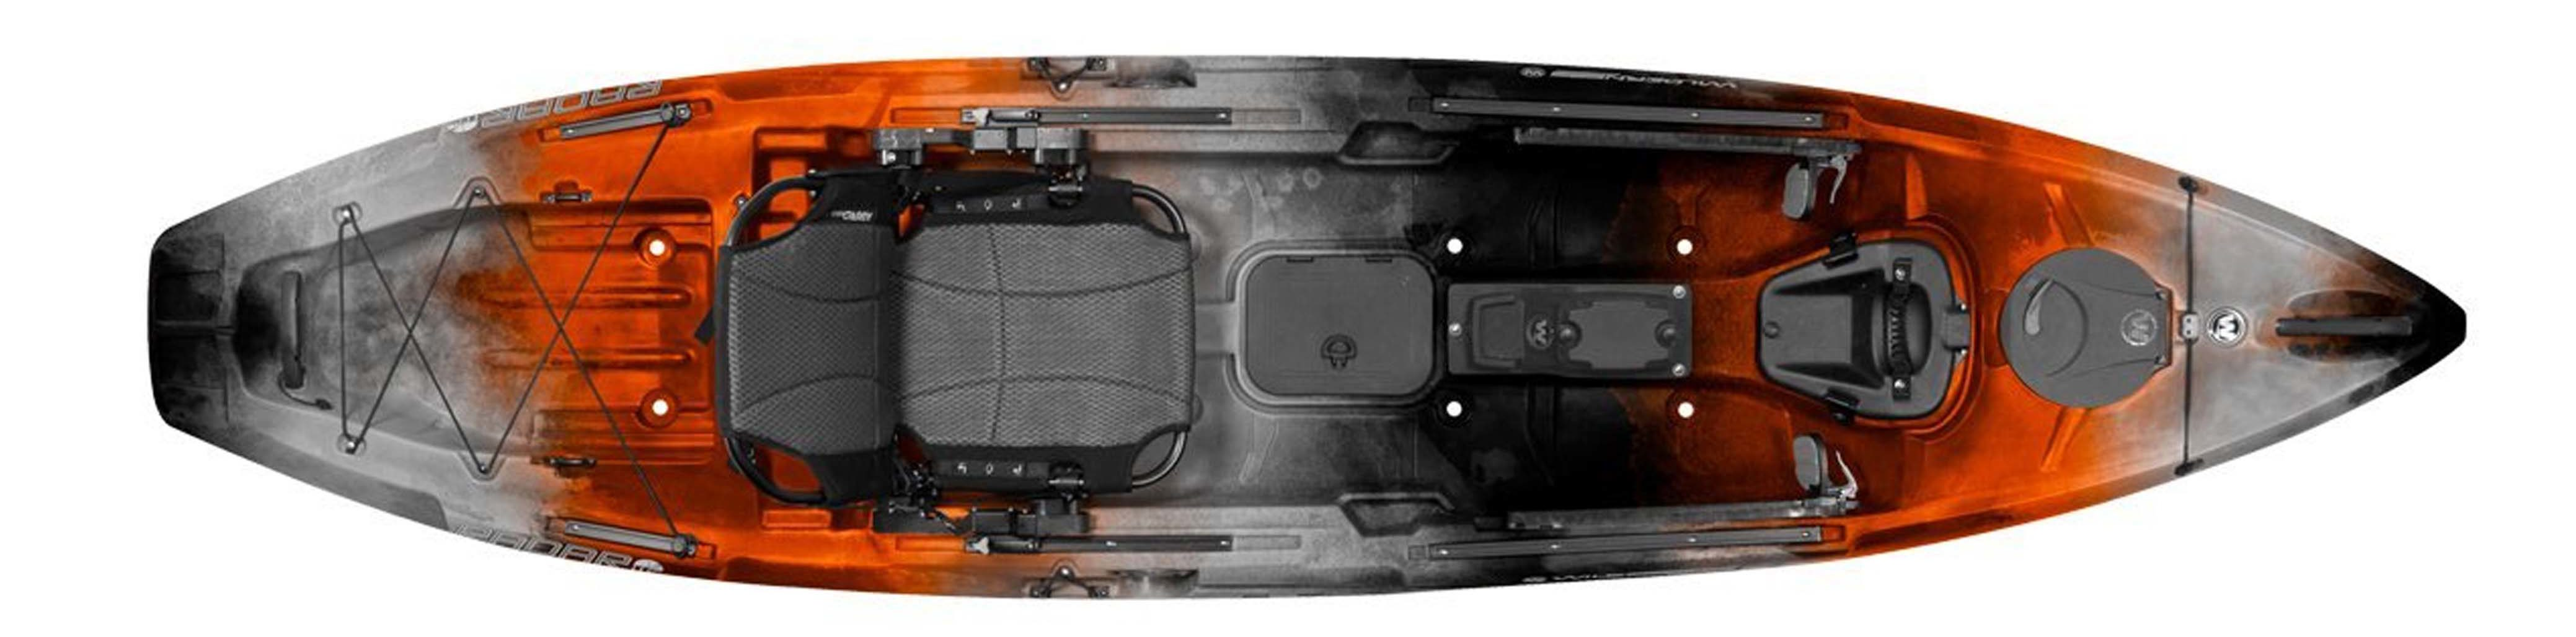 2017 Wilderness Radar 115 Fishing Kayak Package